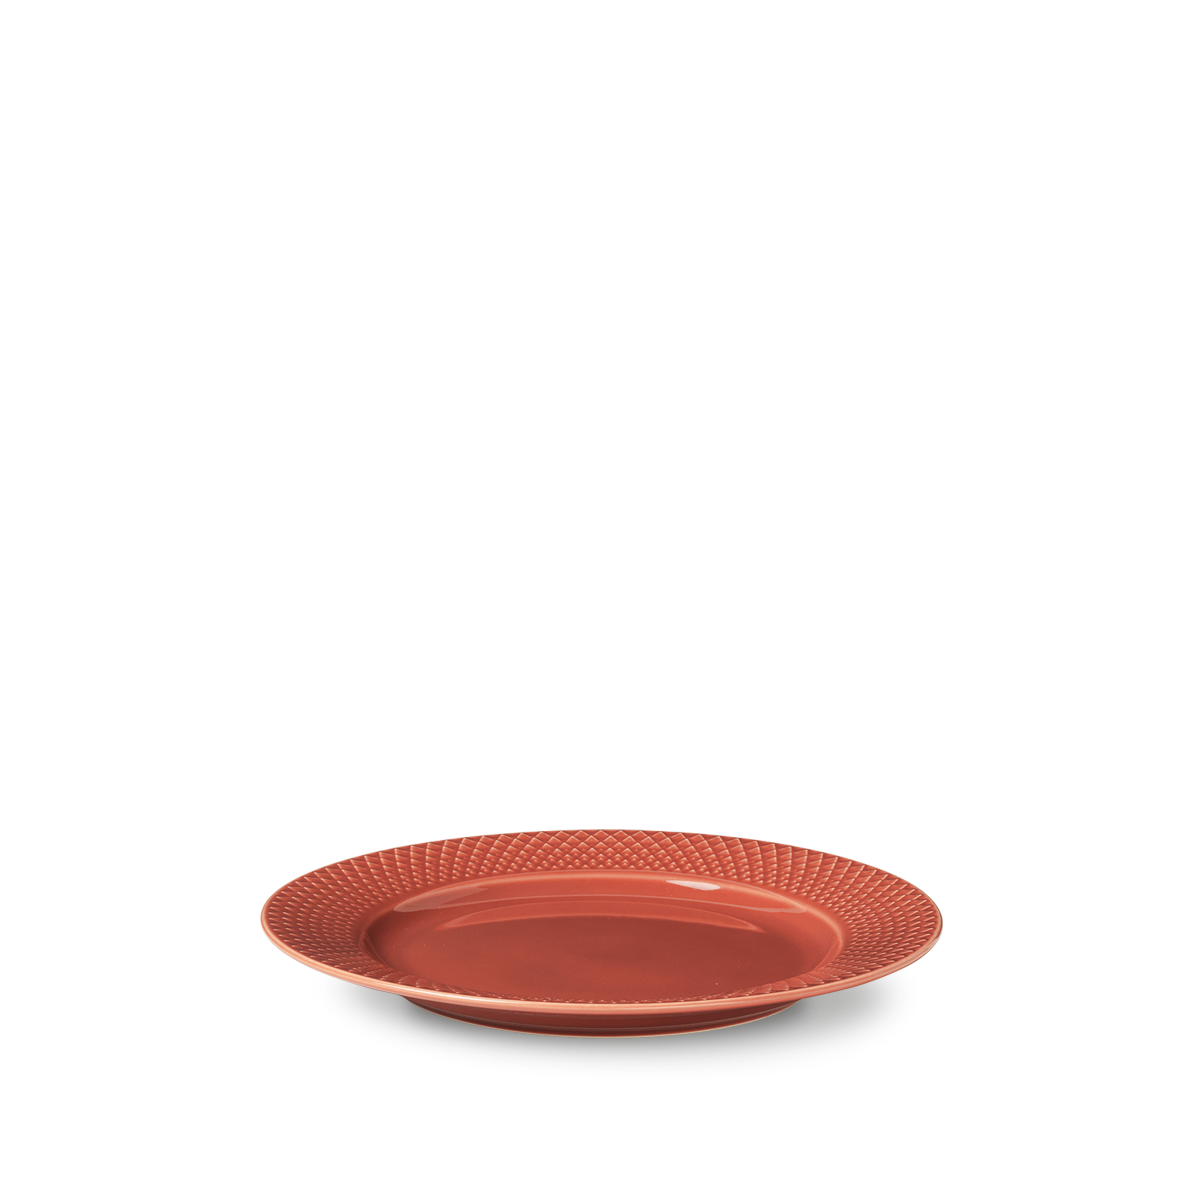 Lyngby Porcelæn - Rhombe Color Lunch Plate Dia. 23cm - Terracotta (201935)